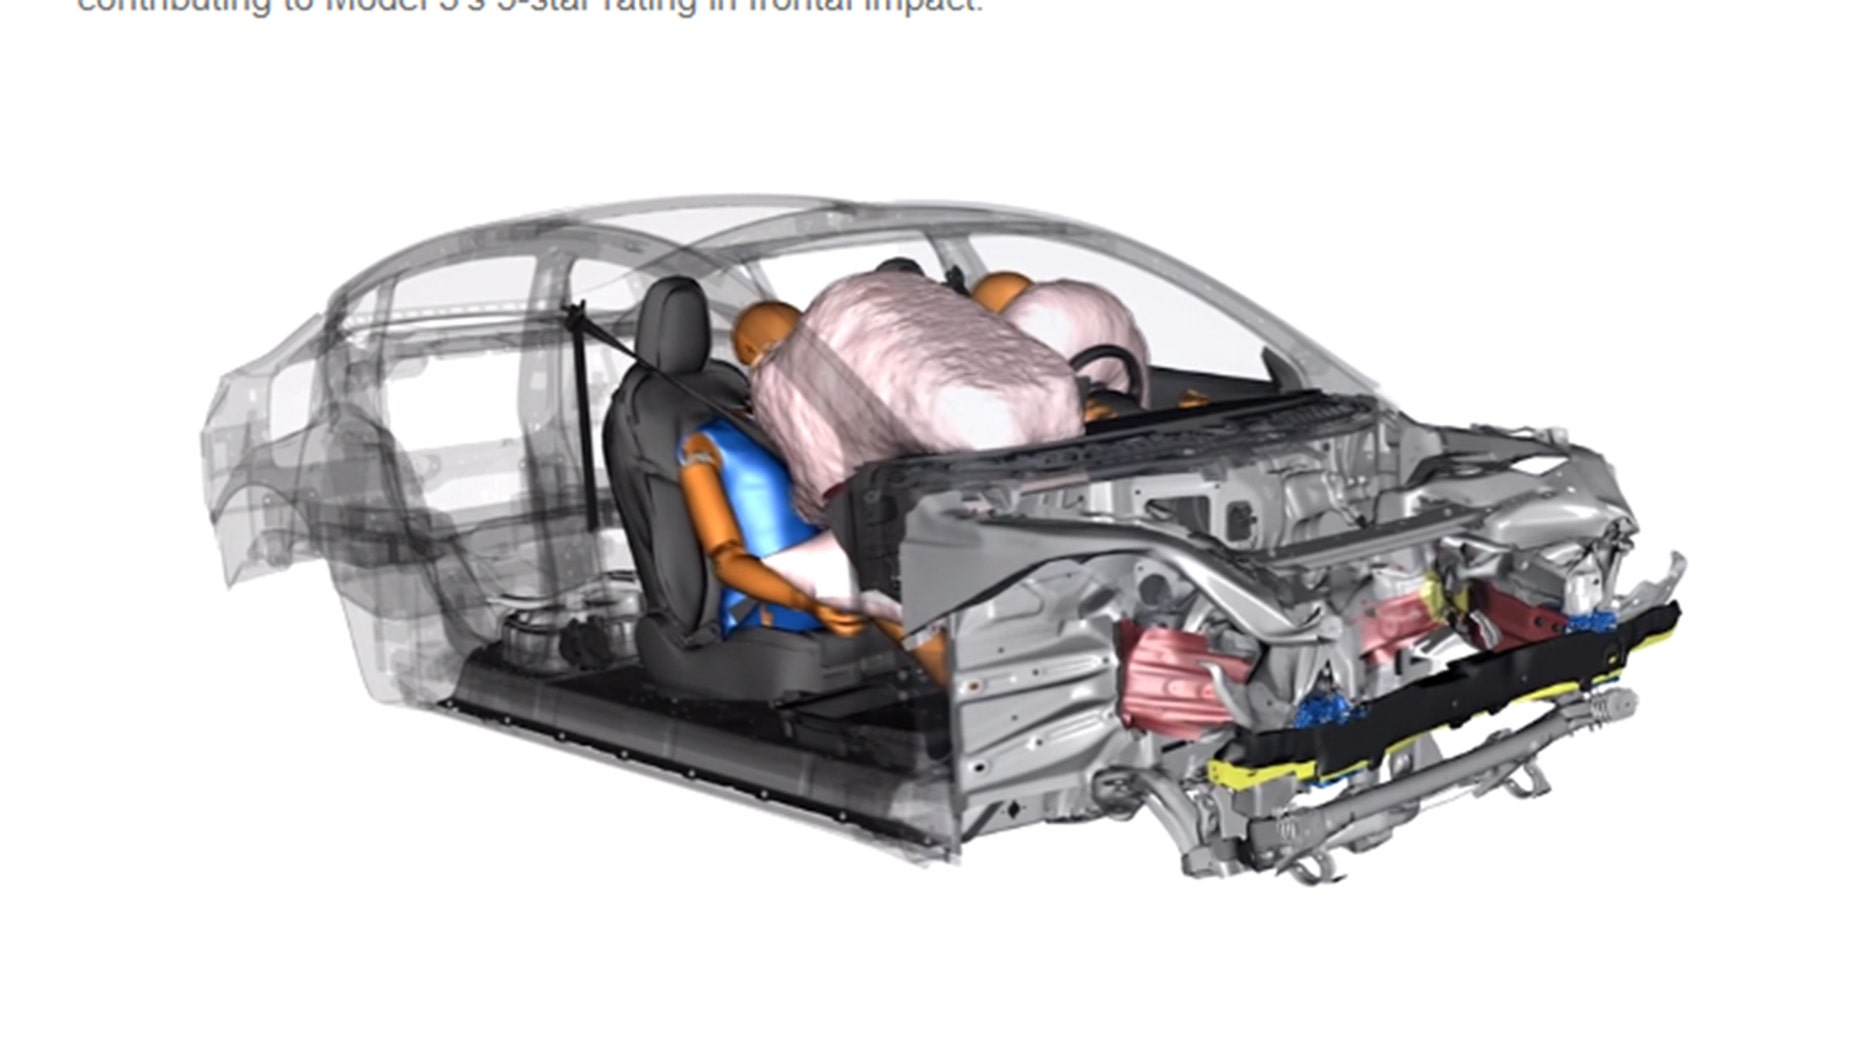 Tesla released CAD animations of Model 3 crash tests to illustrate its analysis.